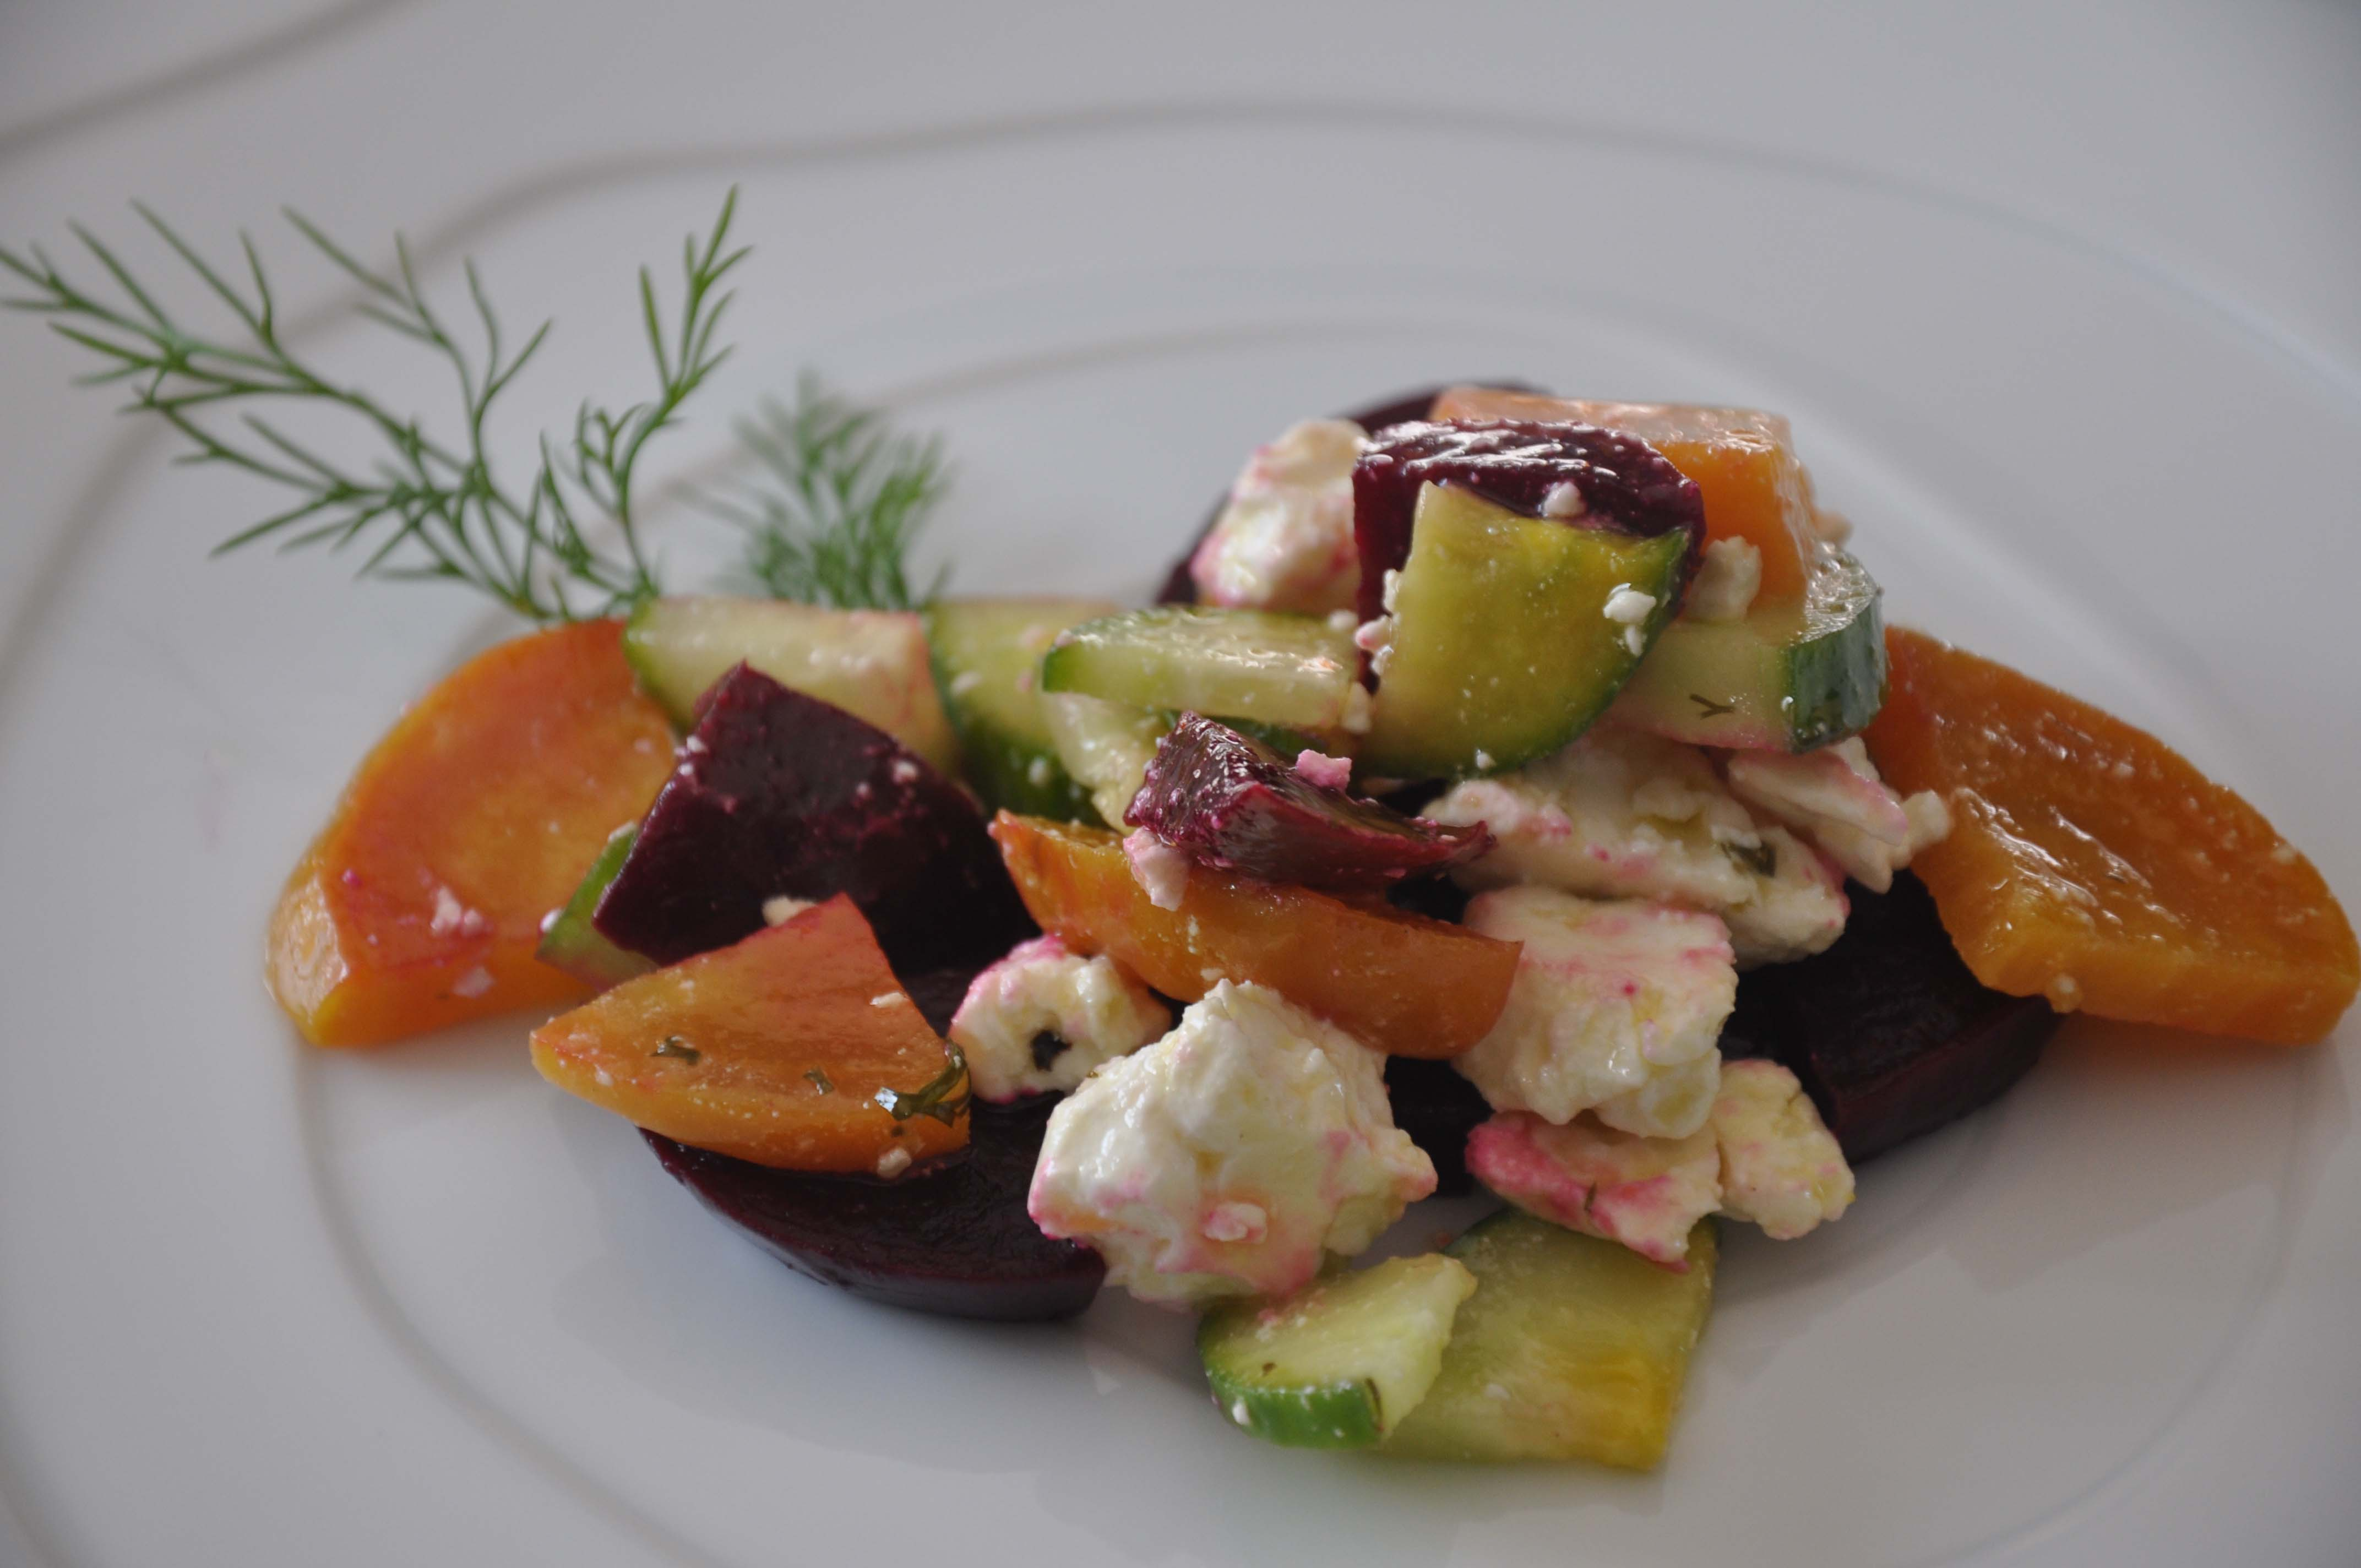 Beet, Cucumber, and Feta Salad with Dill Vinaigrette